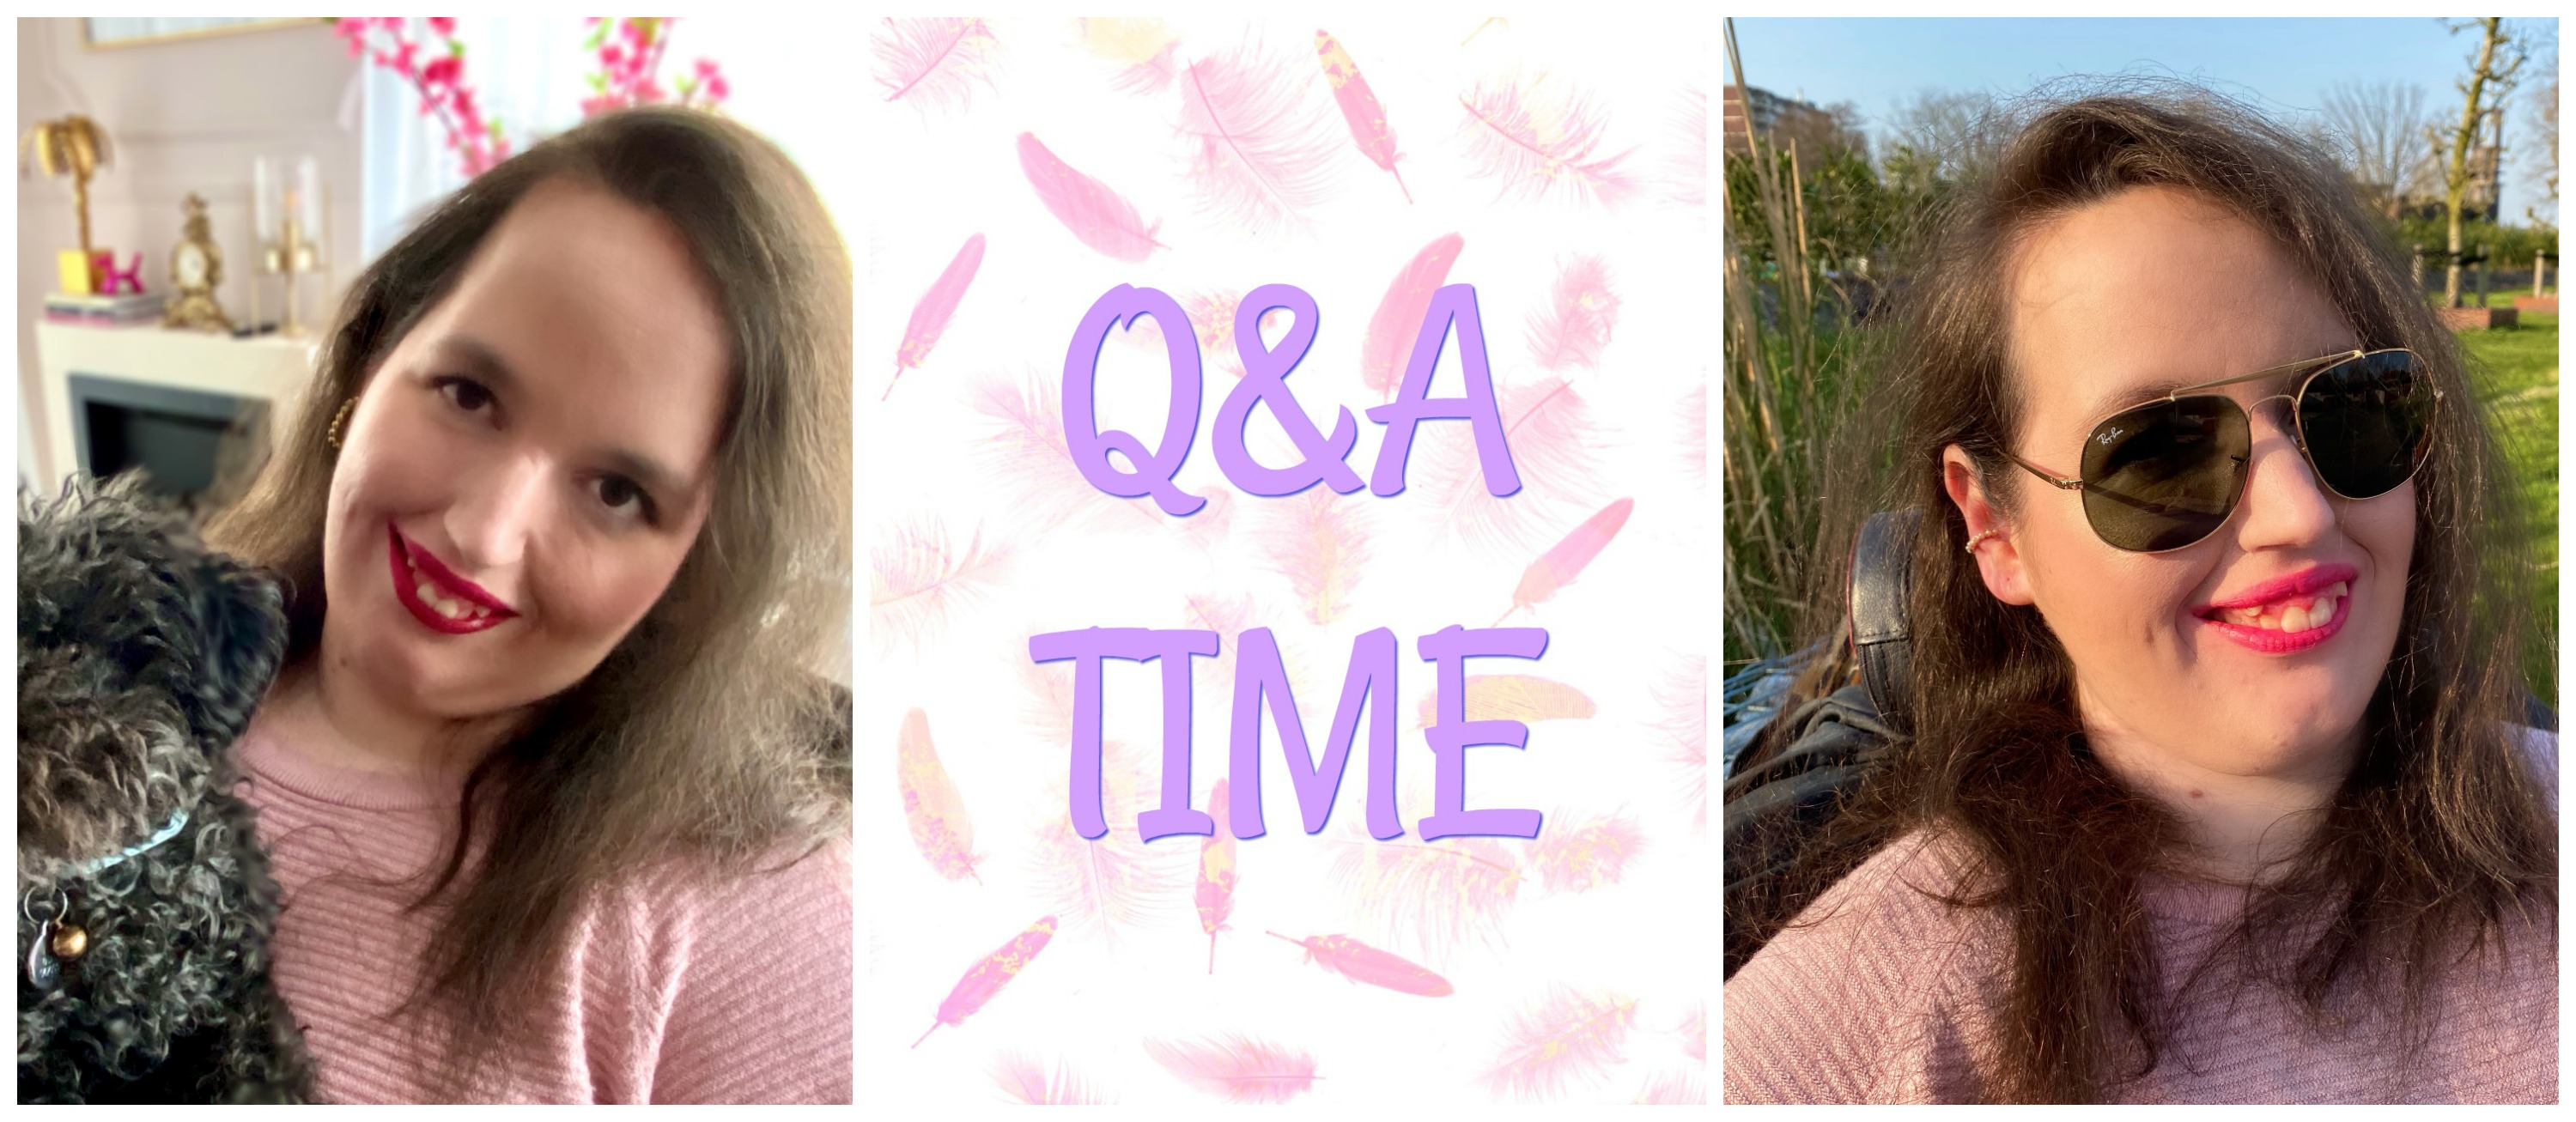 Q&A time the girl in bed